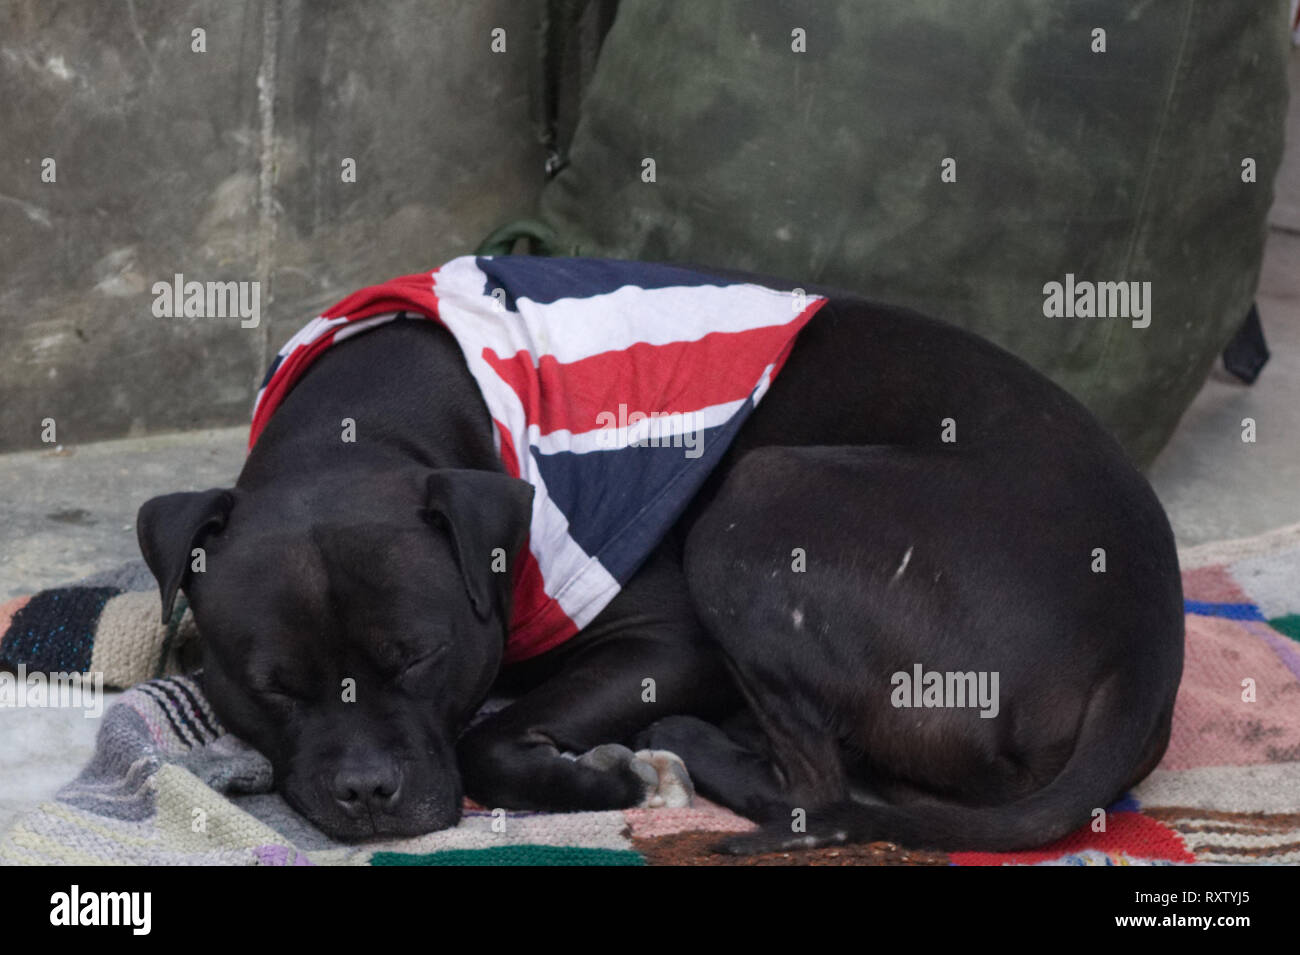 dog sleeping at a Brexit protest with union jack flag. London England - Stock Image